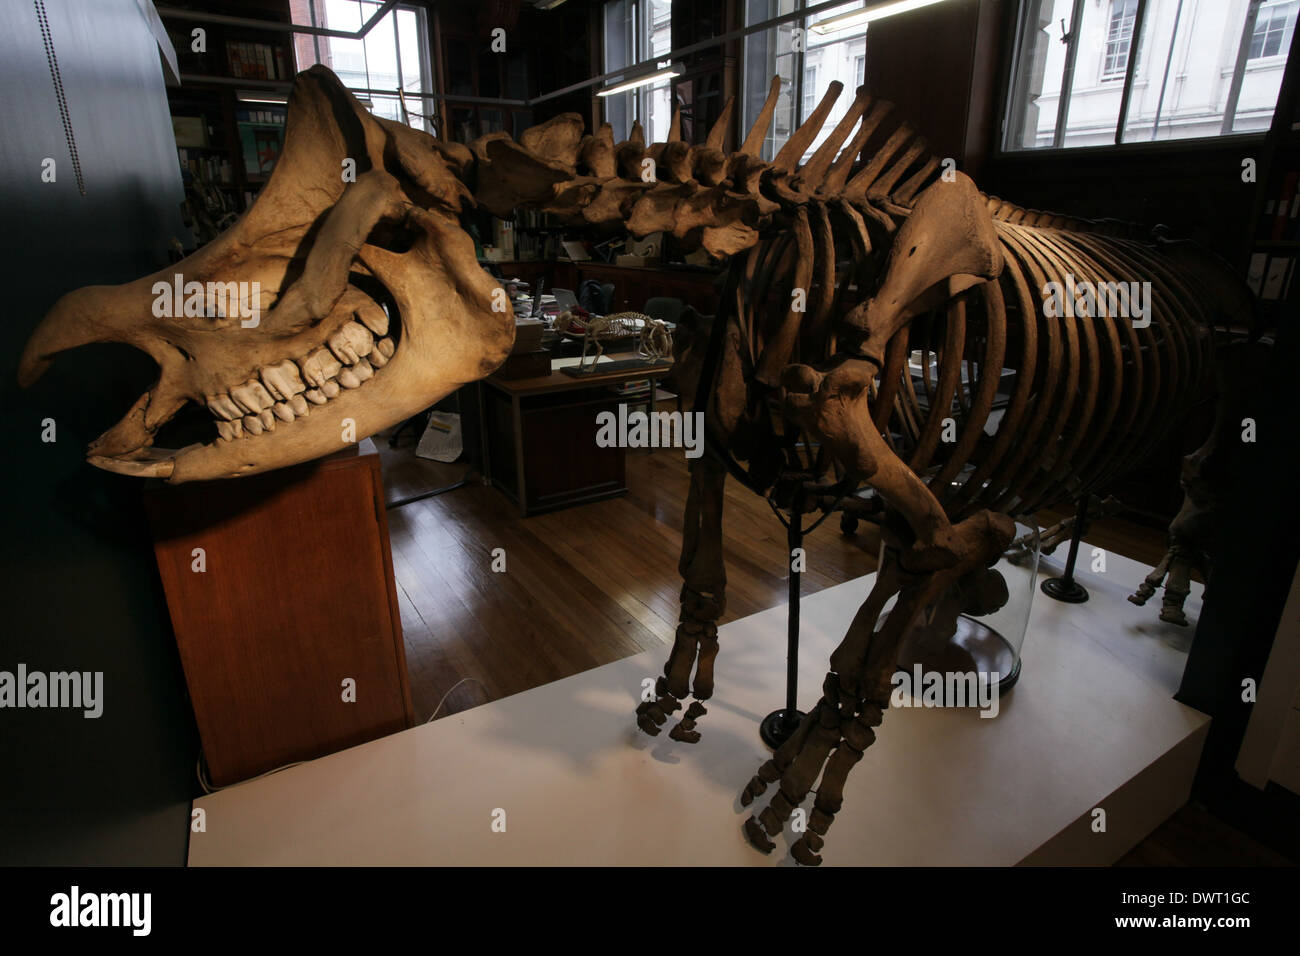 Grant Museum of Zoology and Comparative Anatomy, University College ...